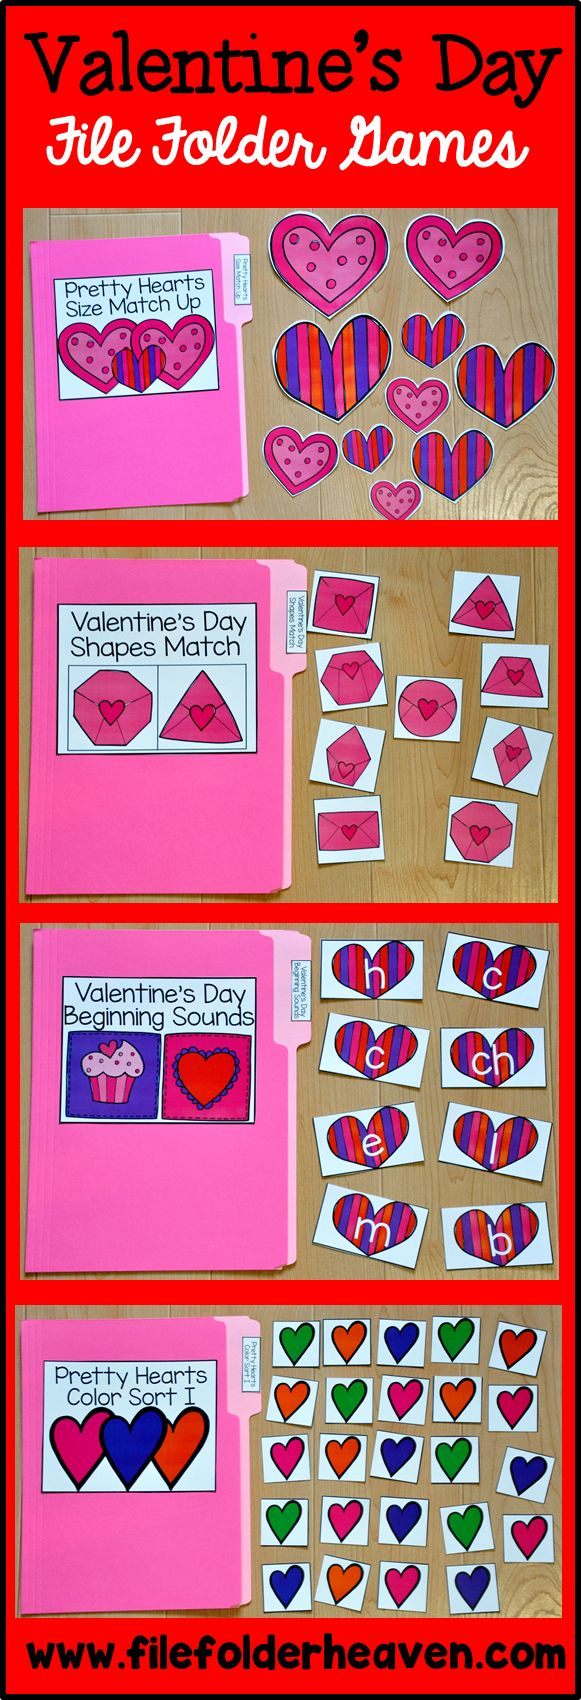 This Valentine's Day File Folder Games Mini-Bundle includes 15 complete Valentine's Day themed file folder games that focus on basic skills.